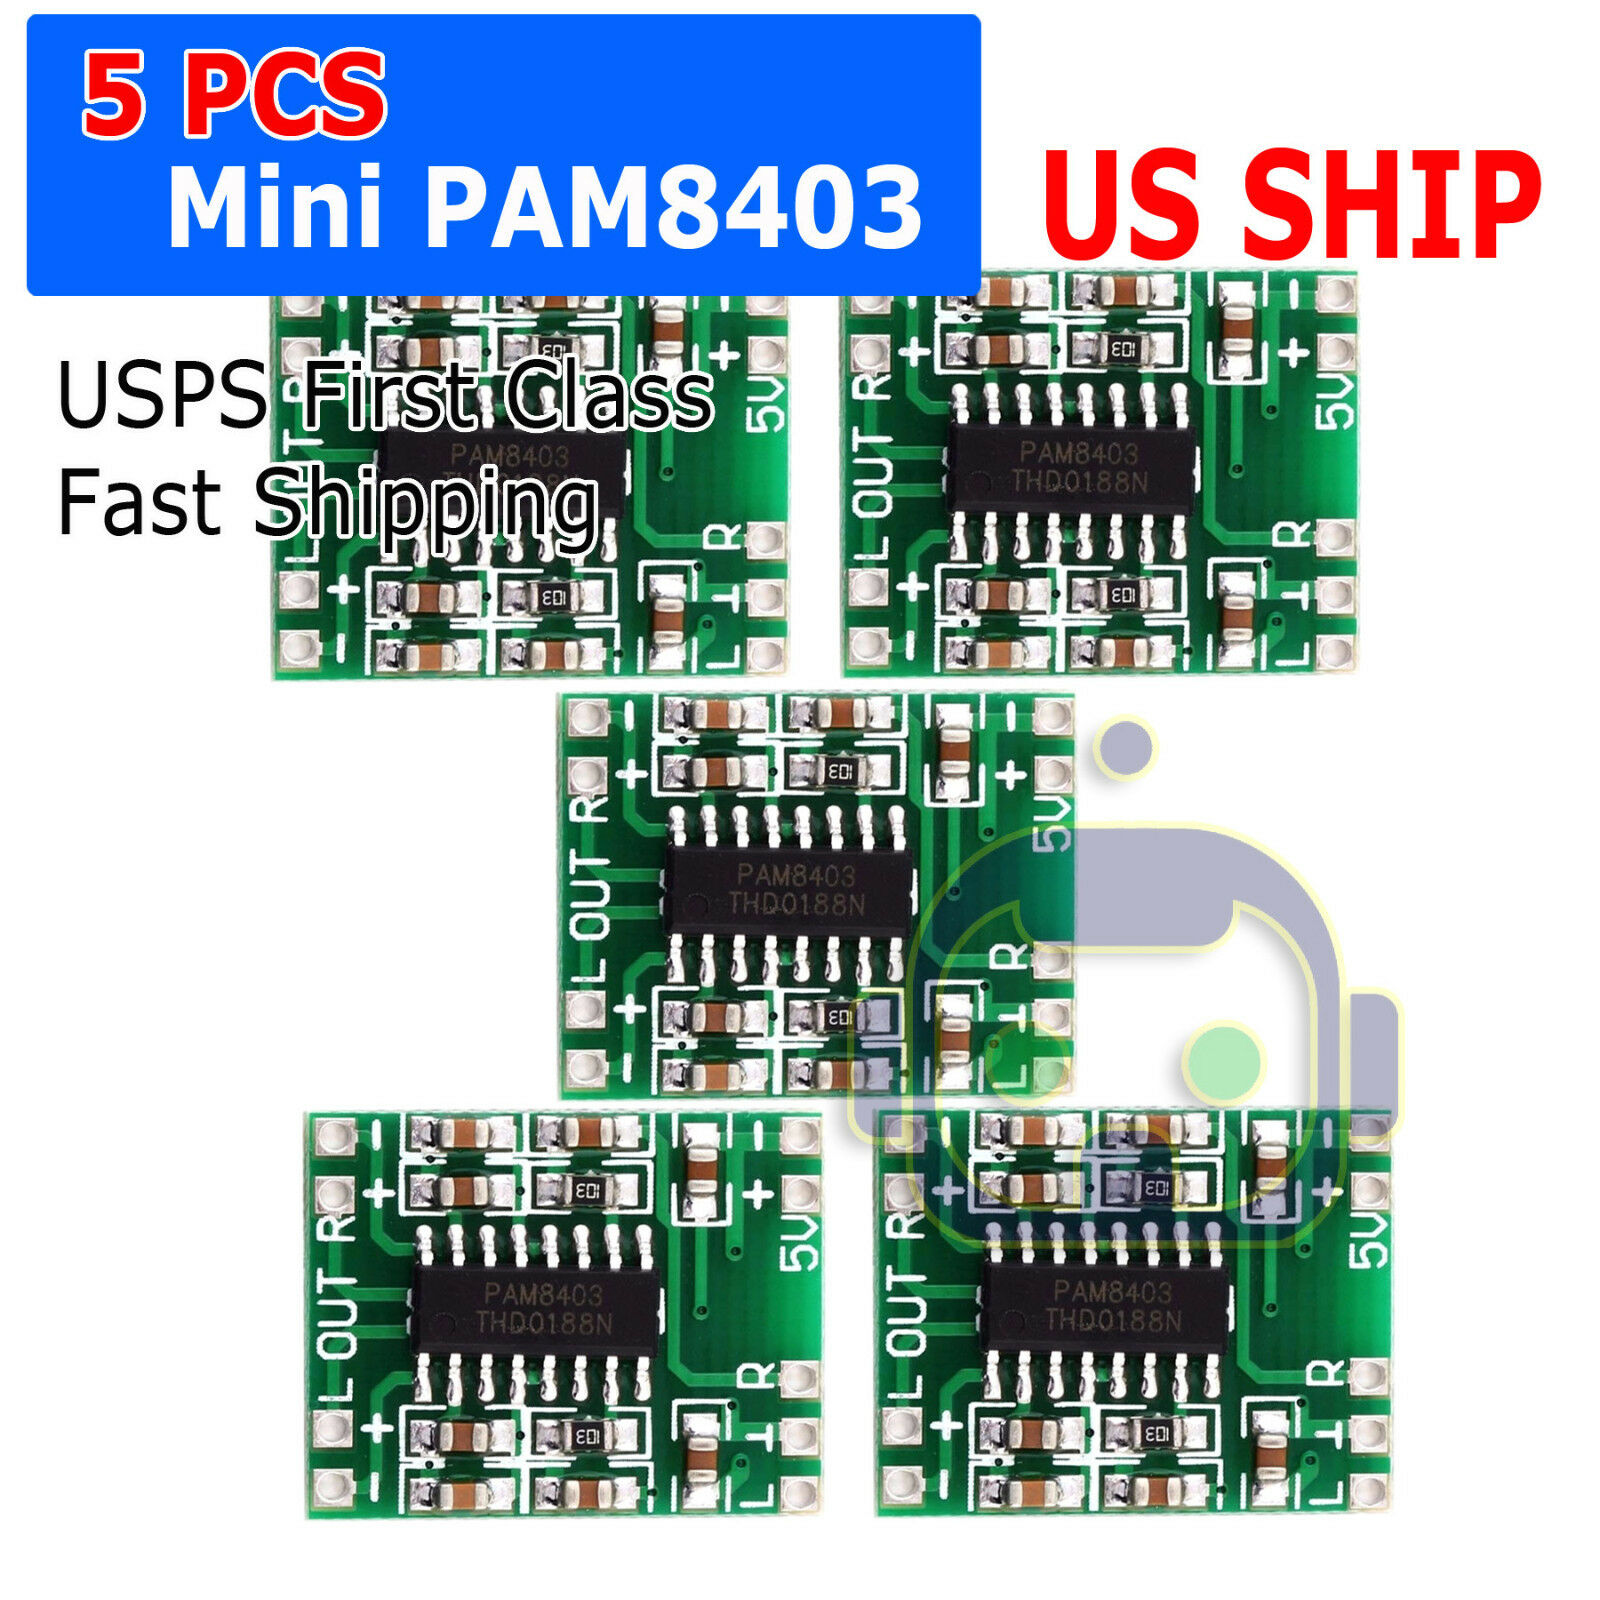 Pam8403 Mini 2 Channel 3w Stereo Class D Audio Power Amplifier Watts Using Three Lm386 Norton Secured Powered By Verisign